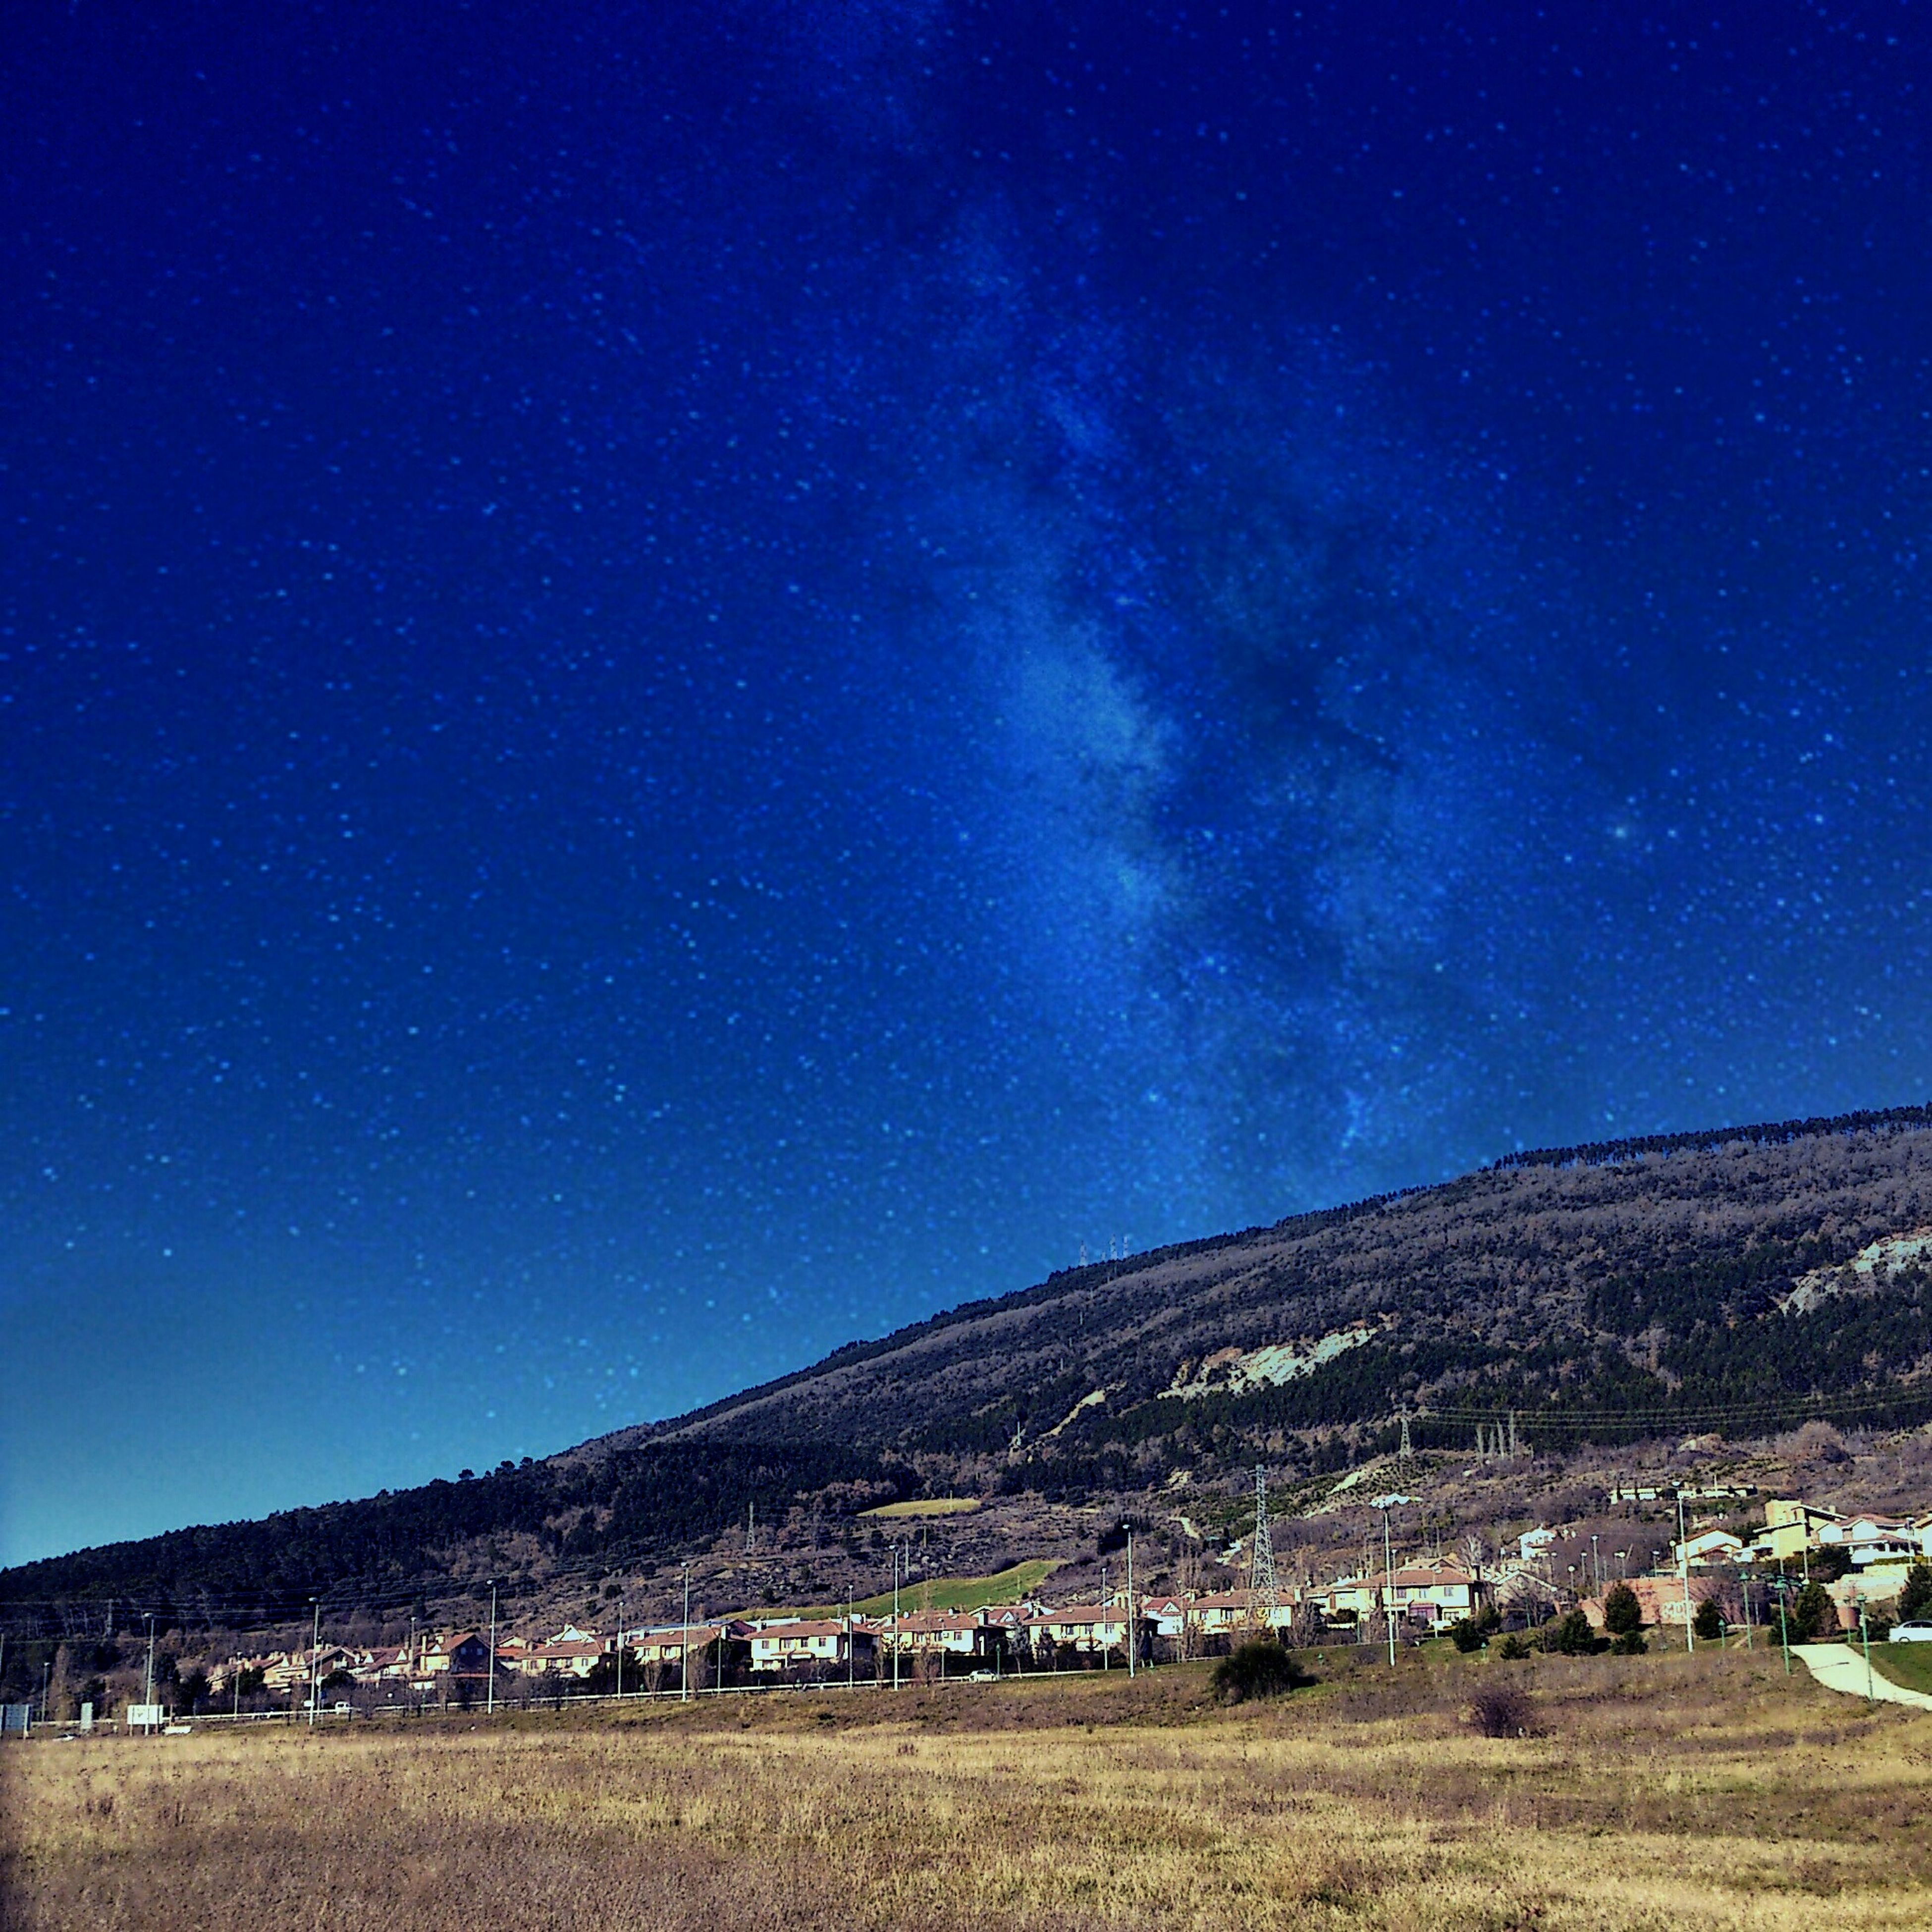 blue, night, landscape, scenics, tranquil scene, tranquility, beauty in nature, star - space, sky, mountain, nature, star field, clear sky, building exterior, field, house, idyllic, built structure, astronomy, outdoors